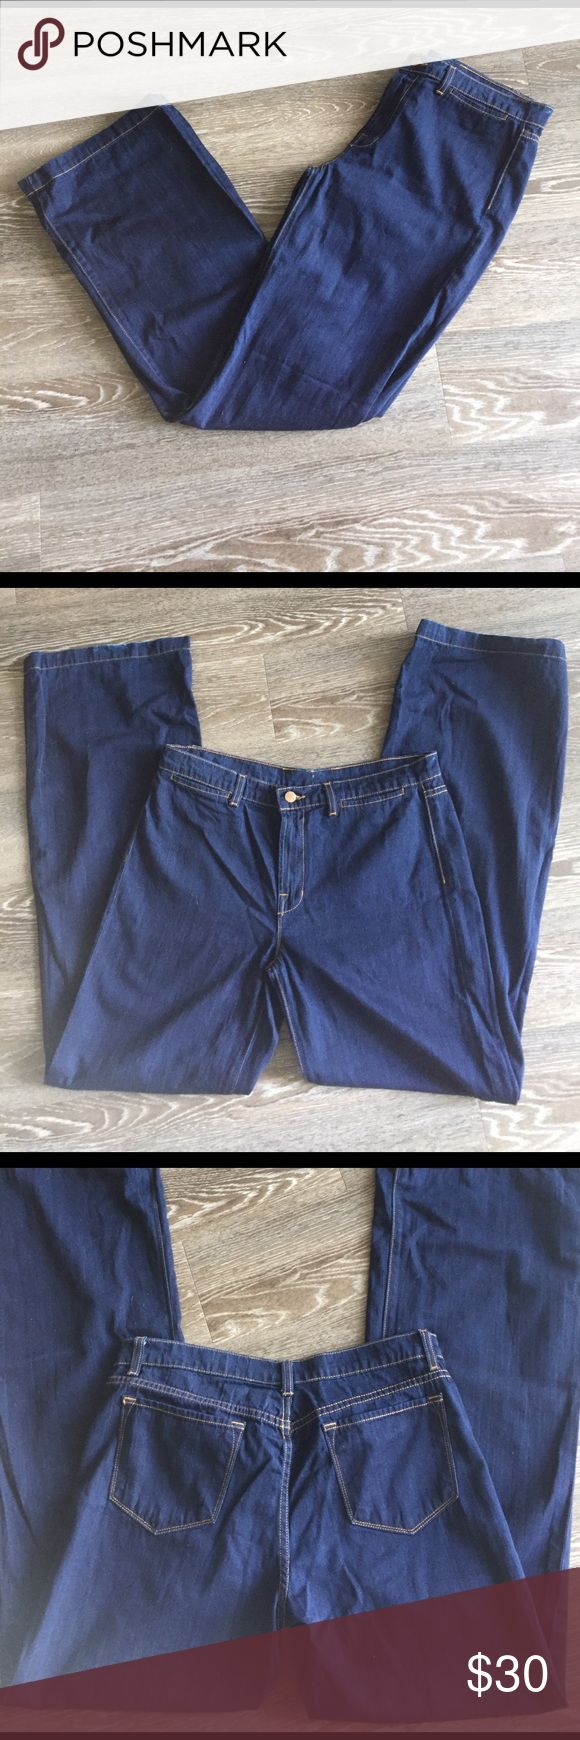 j brand In great barely used condition. Dark wash thin fabric jeans. 34 inseam J Brand Jeans